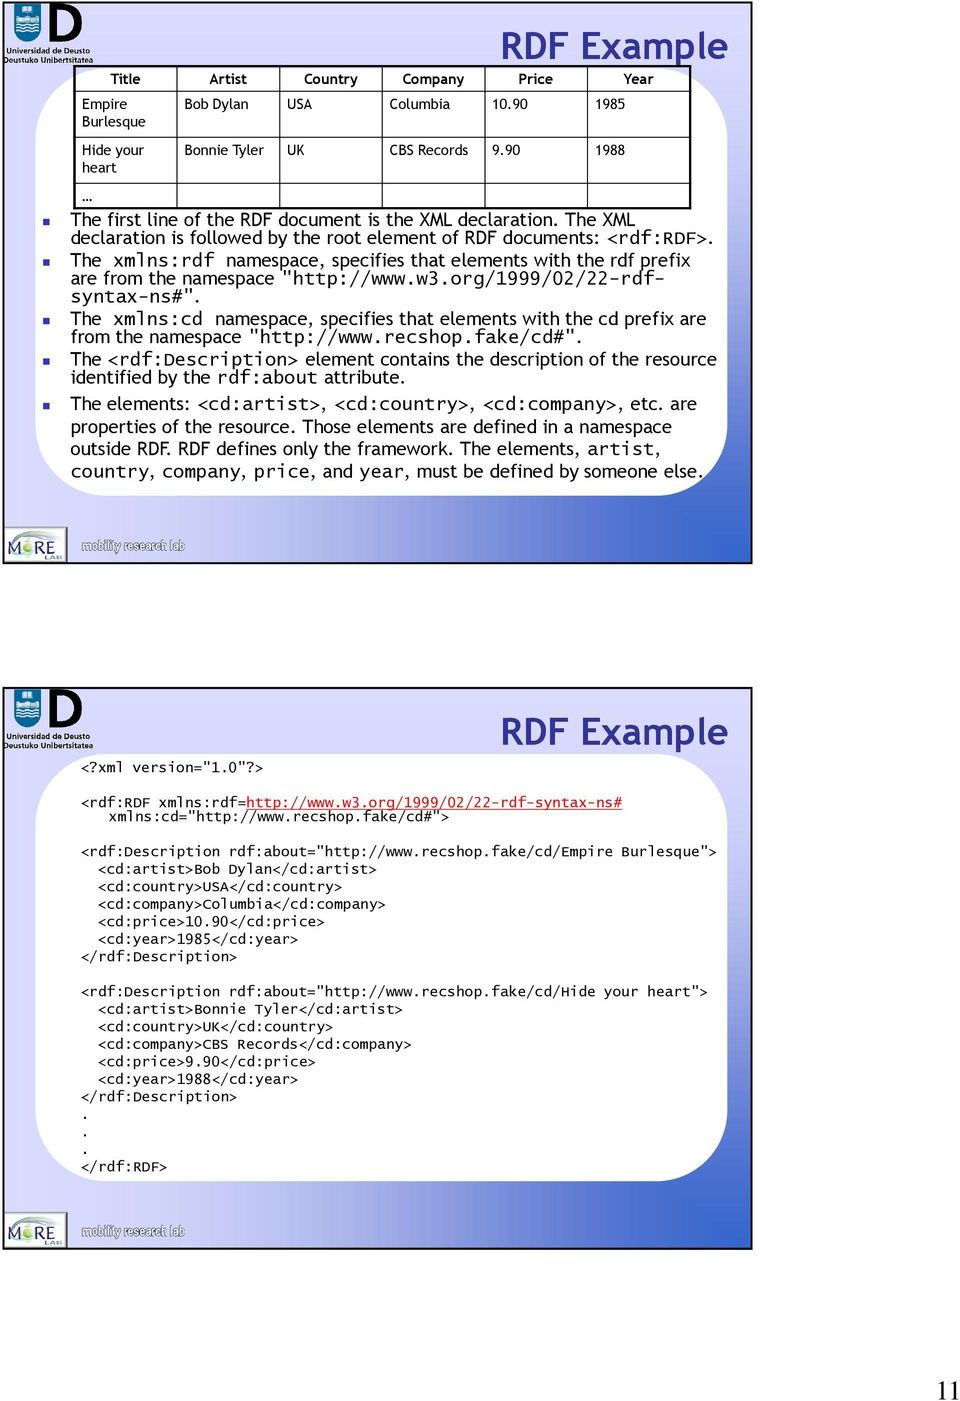 "The xmlns:rdf namespace, specifies that elements with the rdf prefix are from the namespace ""http://www.w3.org/1999/02/22-rdfsyntax-ns#""."